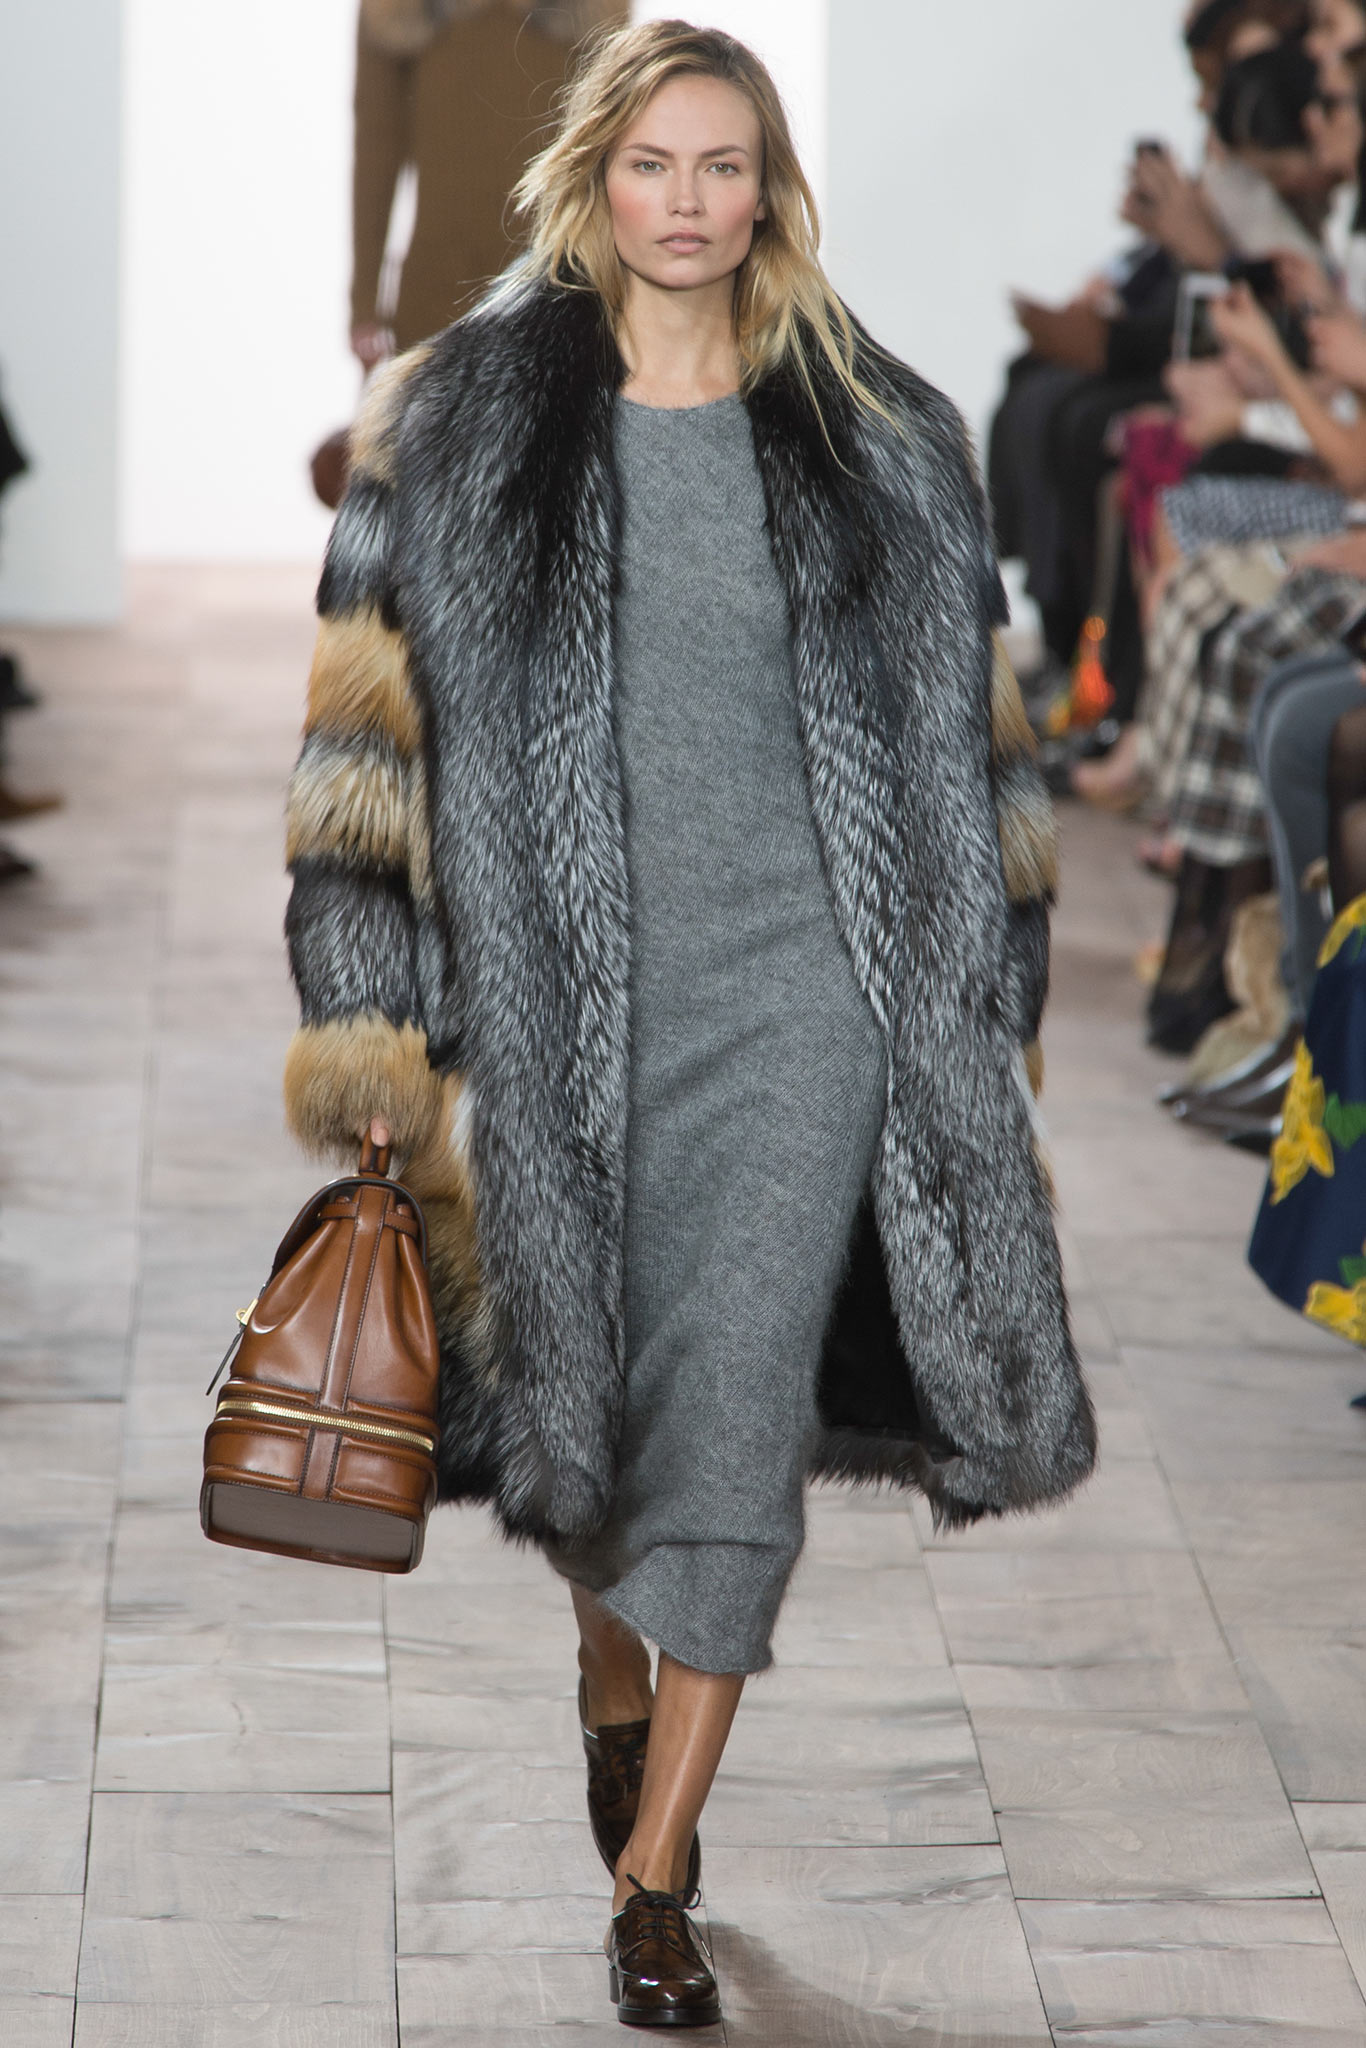 New York Fashion Week Fw15 16 Top 5 Outfits By Michael Kors What We Adore